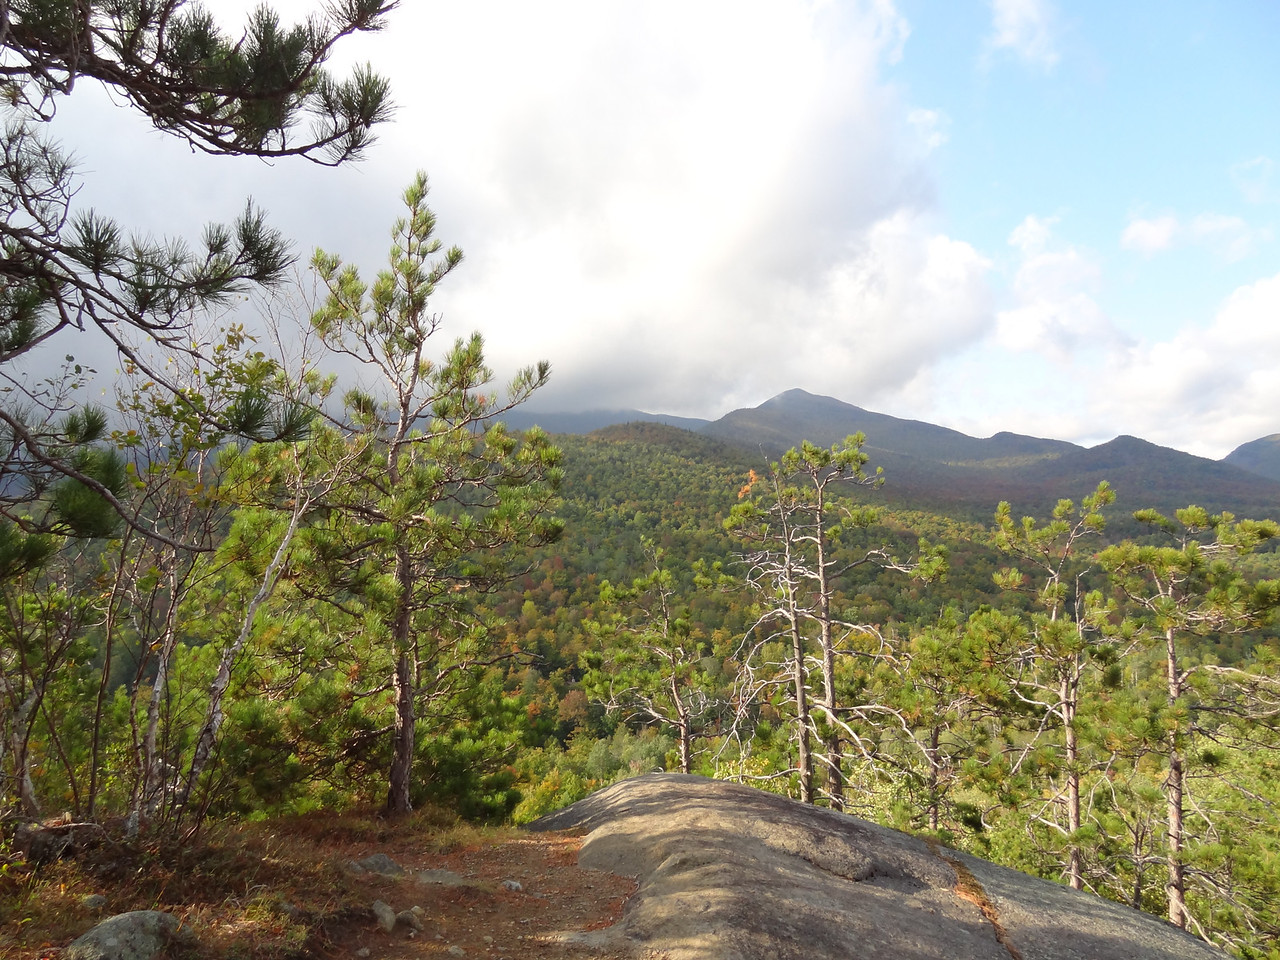 The outcroppings and views were almost identical to any high peak.